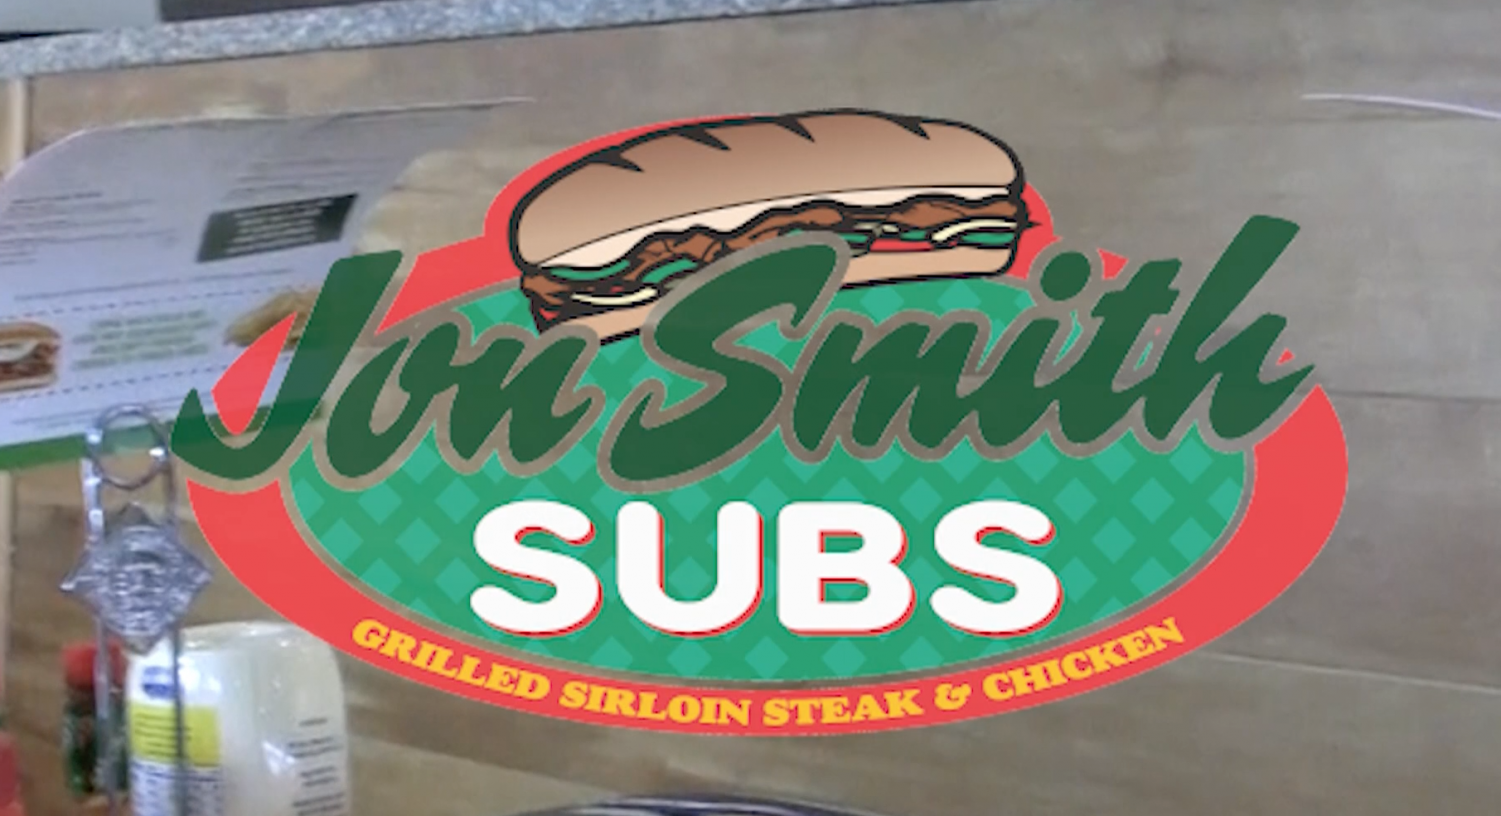 Jon Smith Subs is a new Fort Worth sandwich restaurant.